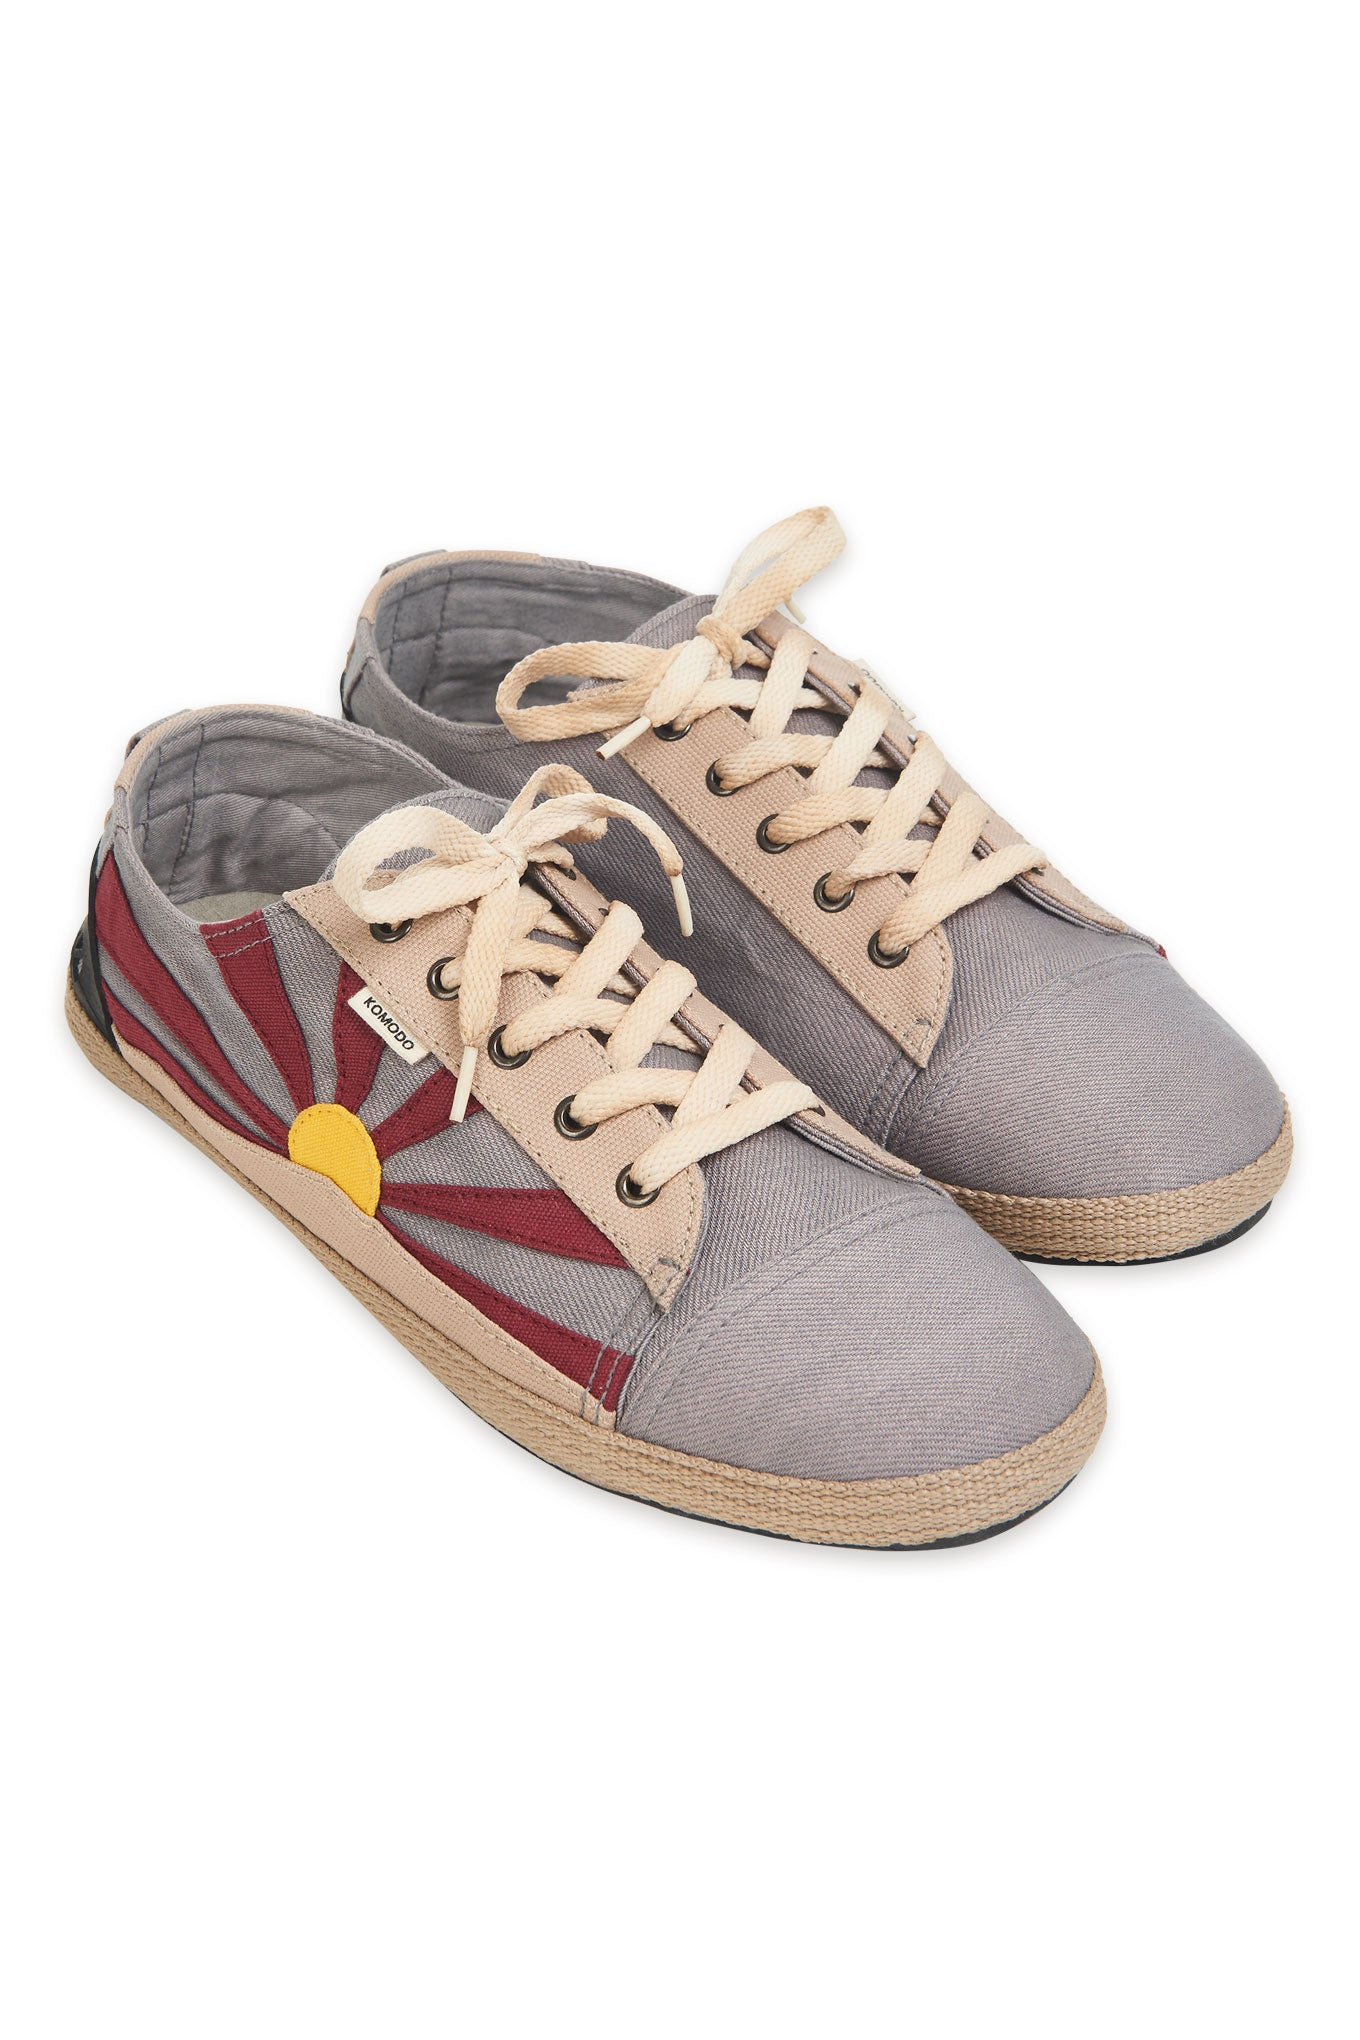 FREE TIBET Mens Shoe Grey